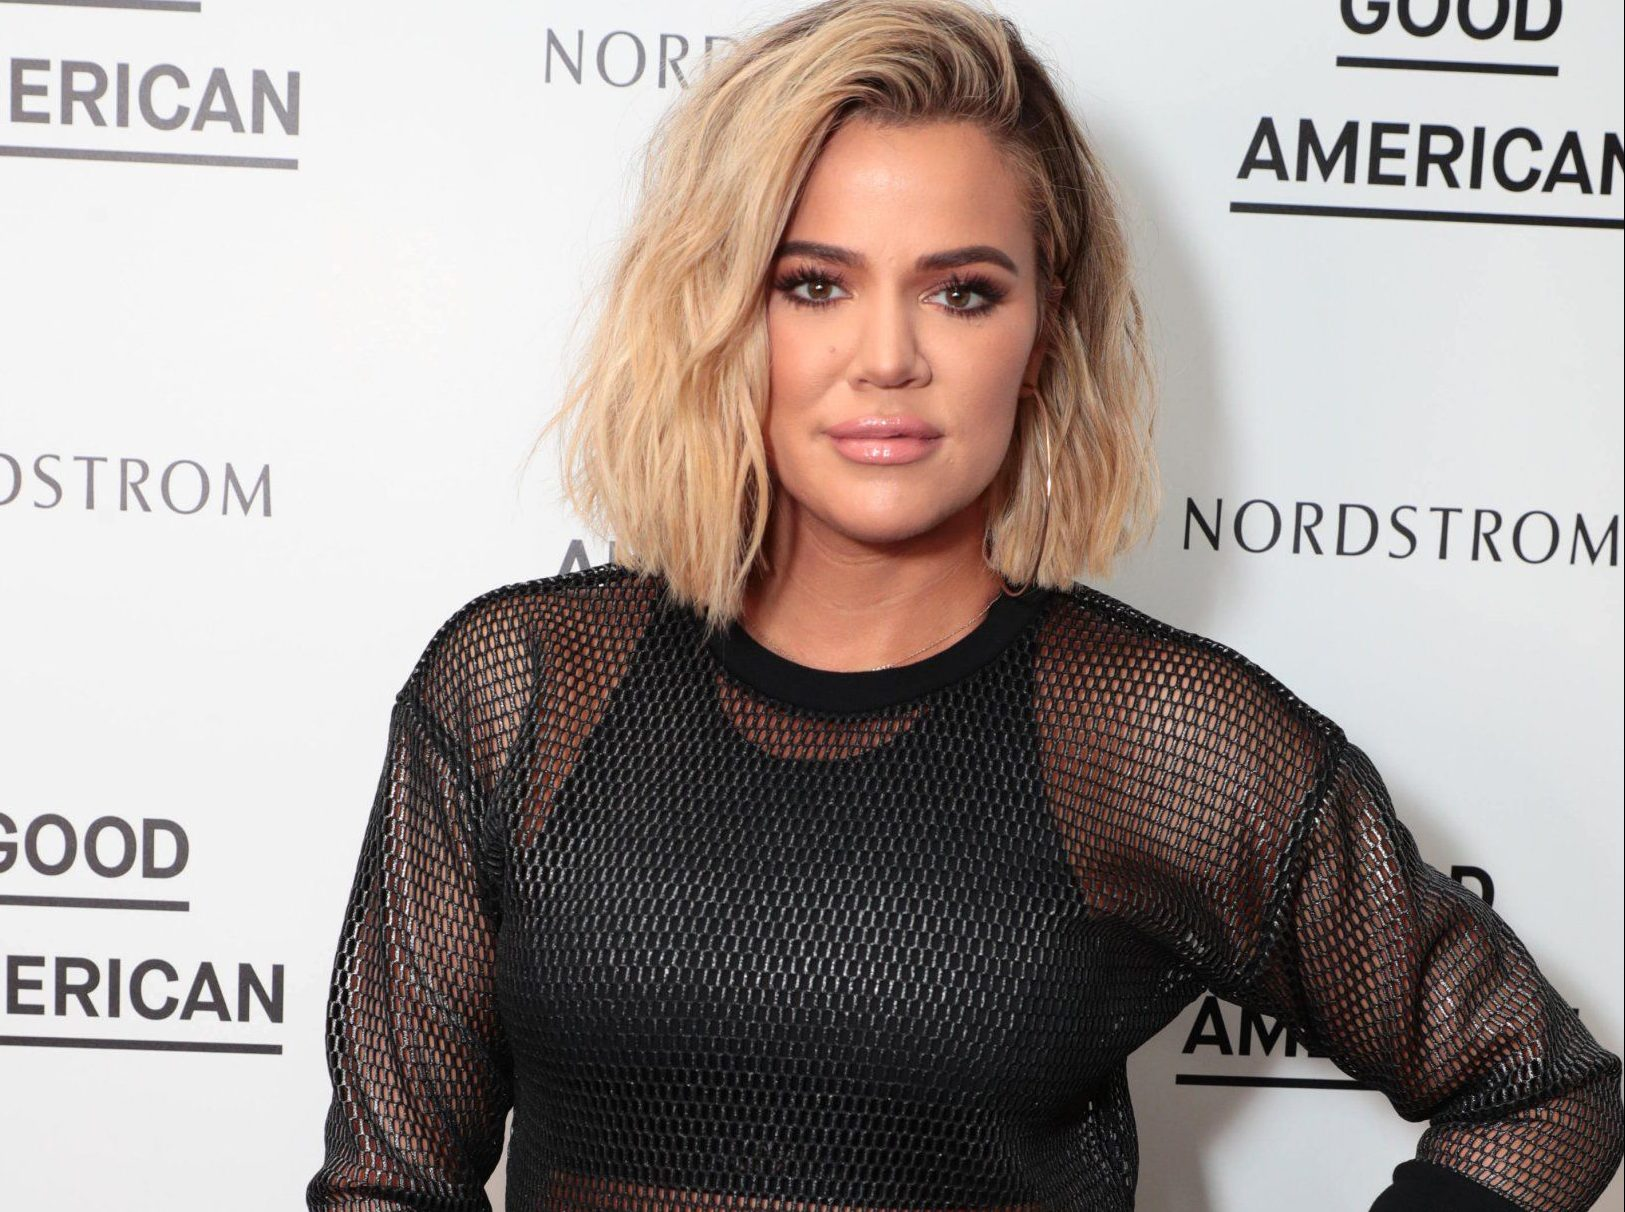 Khloe Kardashian snaps at 'dramatic' fan who calls out absence of Kendall Jenner from Christmas card